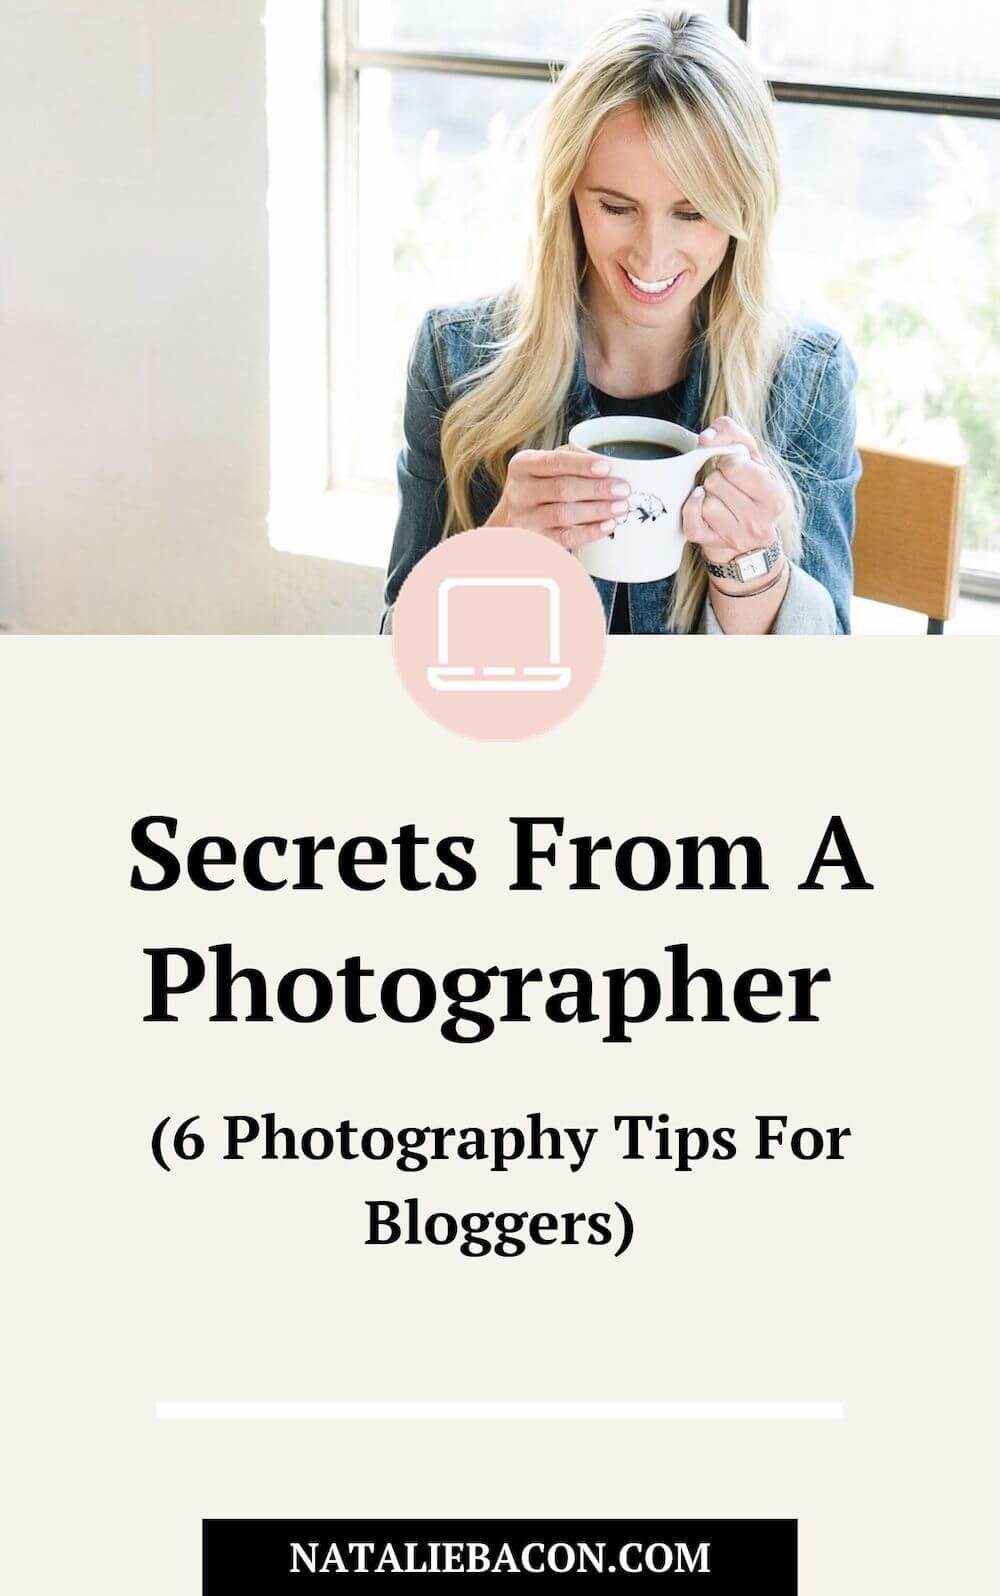 Secrets From A Photographer (6 Photography Tips For Bloggers)